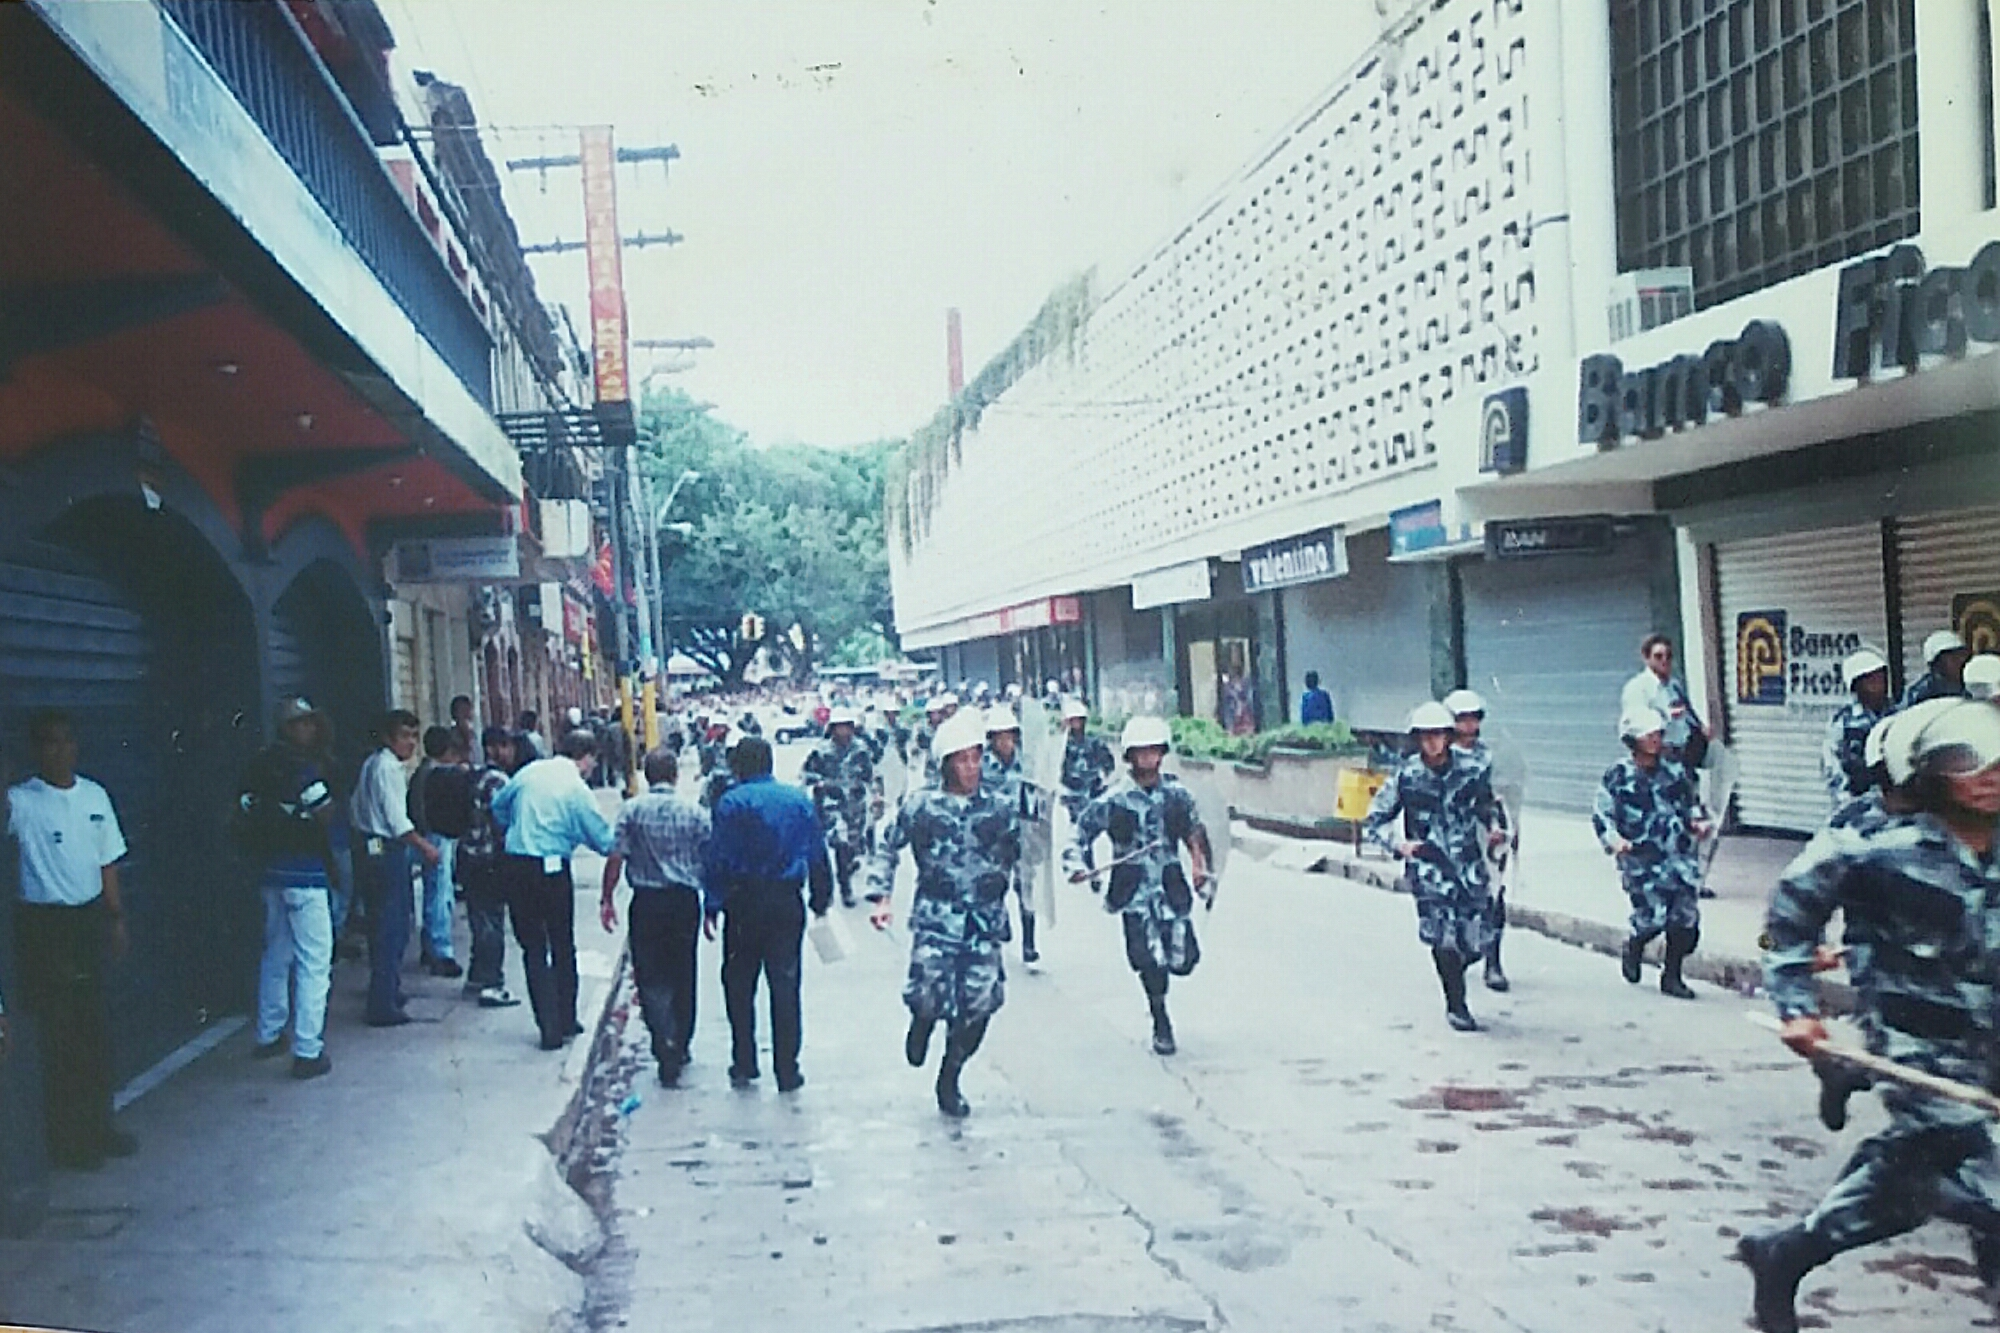 Security forces in downtown Tegucigalpa, Honduras.